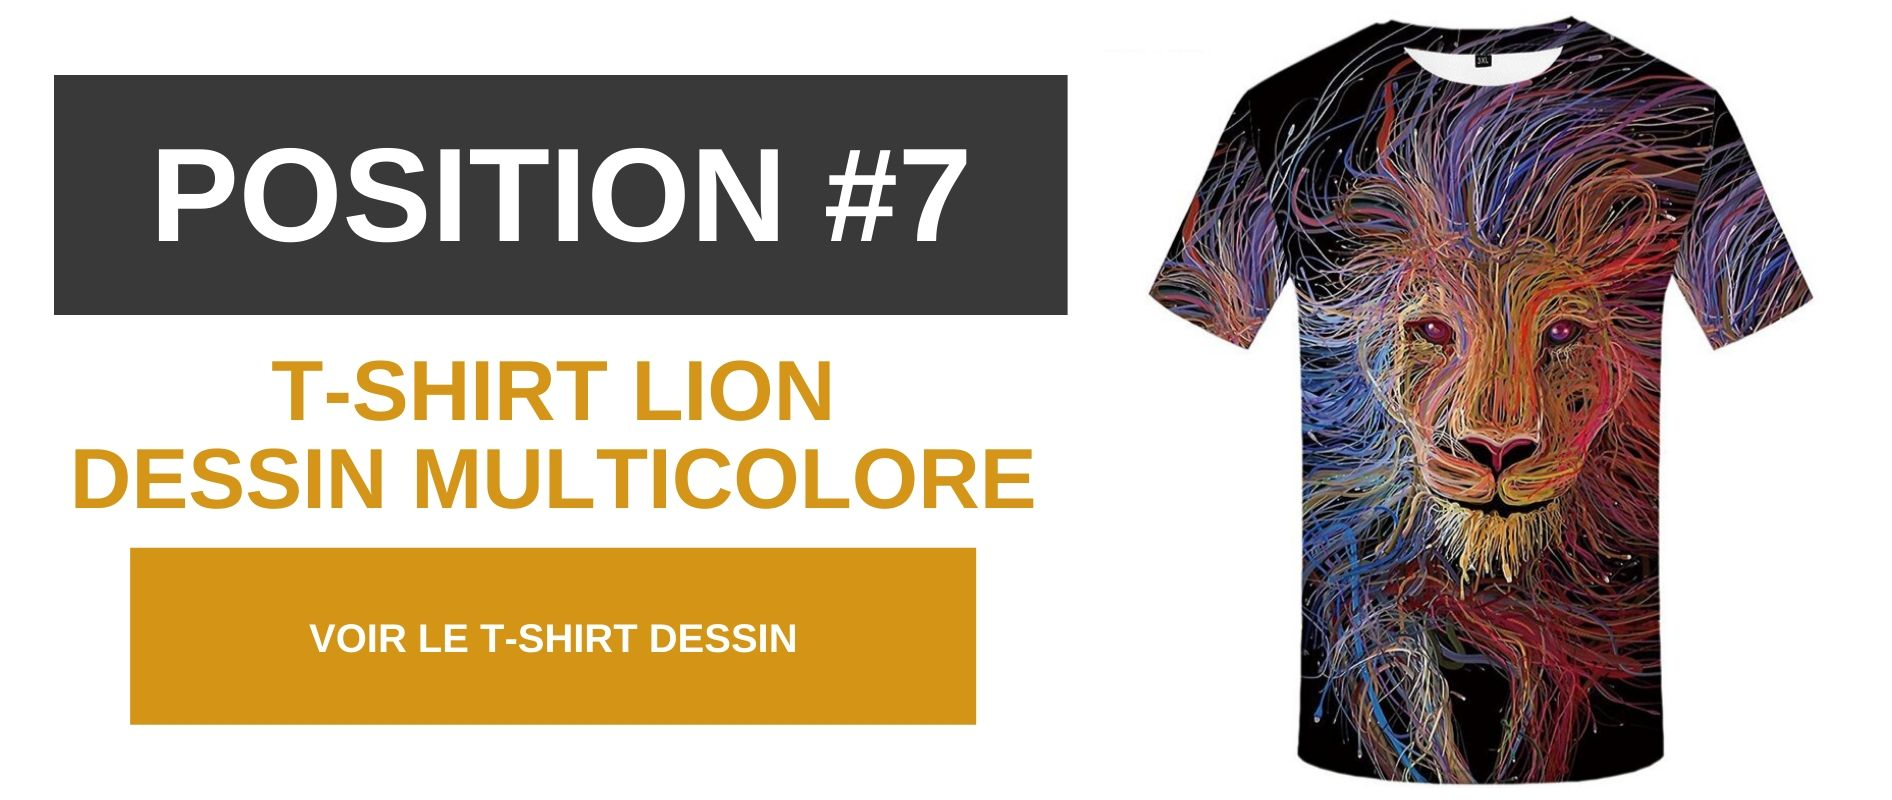 T-shirt lion multicolor.